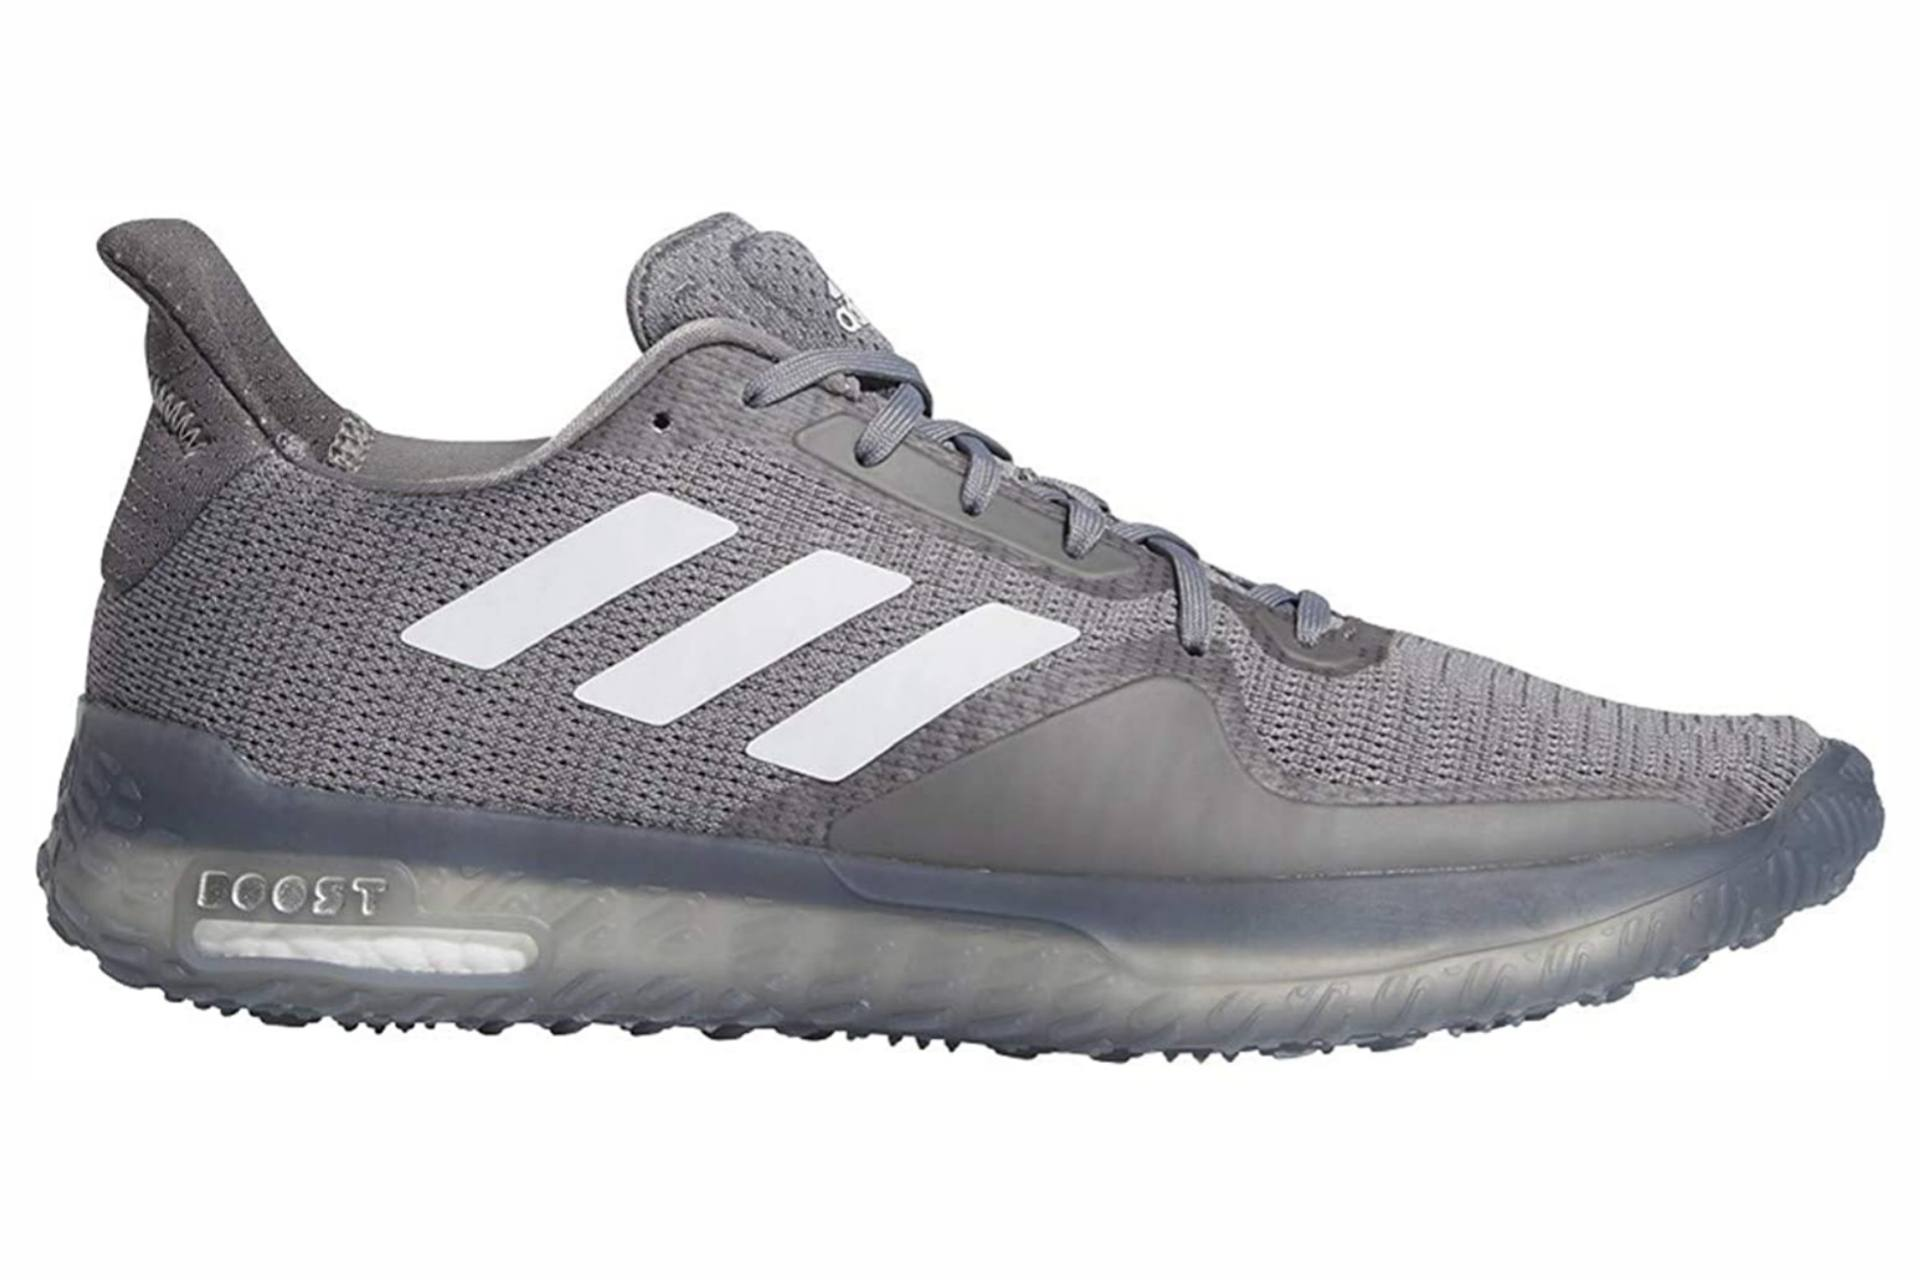 Which Adidas Sneakers are made from ocean plastic?